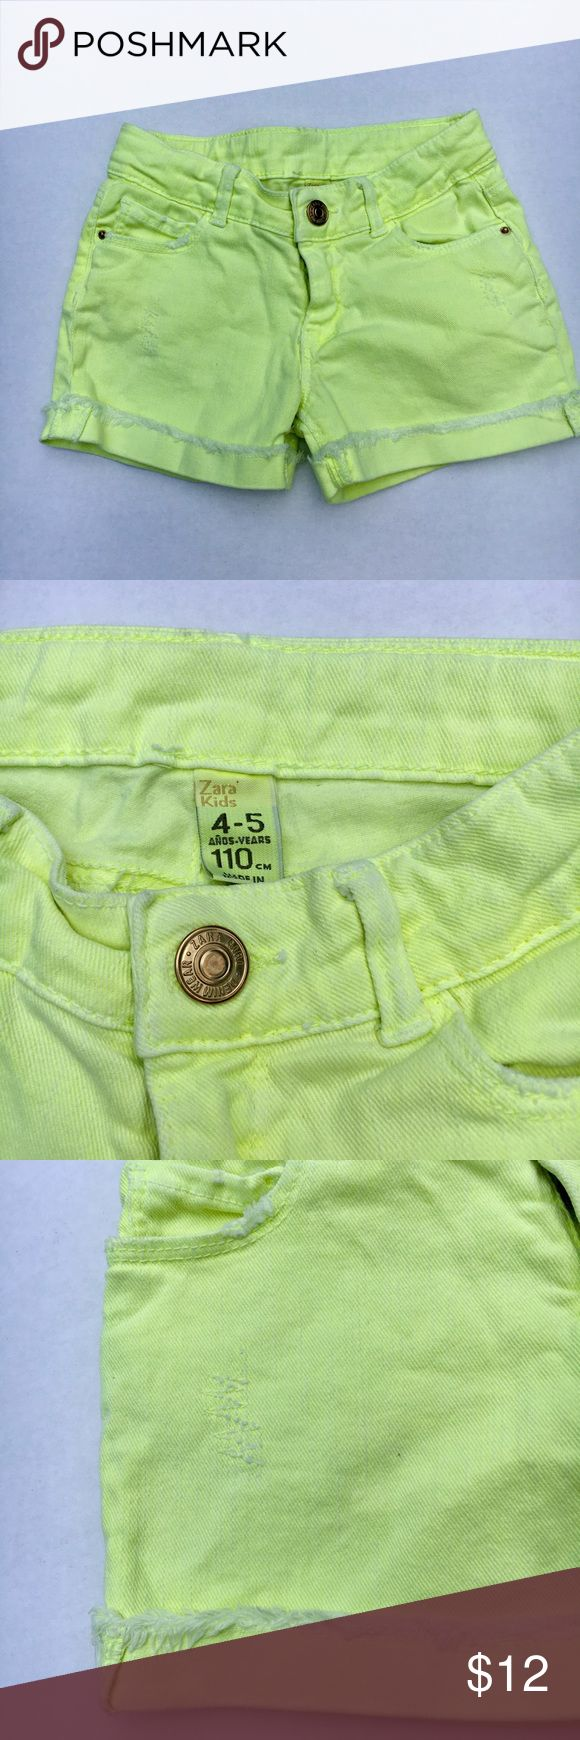 Zara Kids neon yellow shorts Factory-frayed cuffs and distressing EUC: no stains, rips, or pilling.  Adjustable waist Denim fabric has a little stretch to it Zara Bottoms Shorts